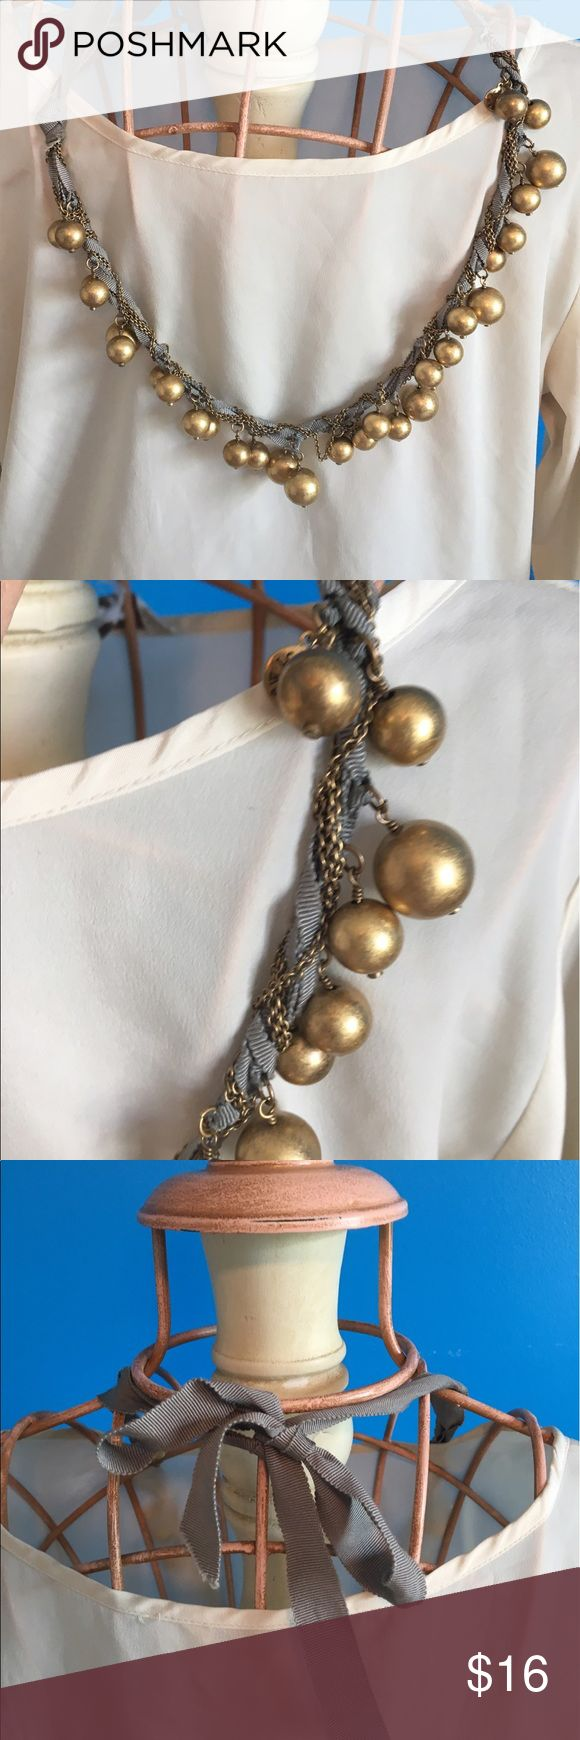 Wonderful adjustable length J.Crew necklace! You can wear it short or long as it ties with a ribbon at your neck in the back! Wonderfully versatile piece! j crew Jewelry Necklaces